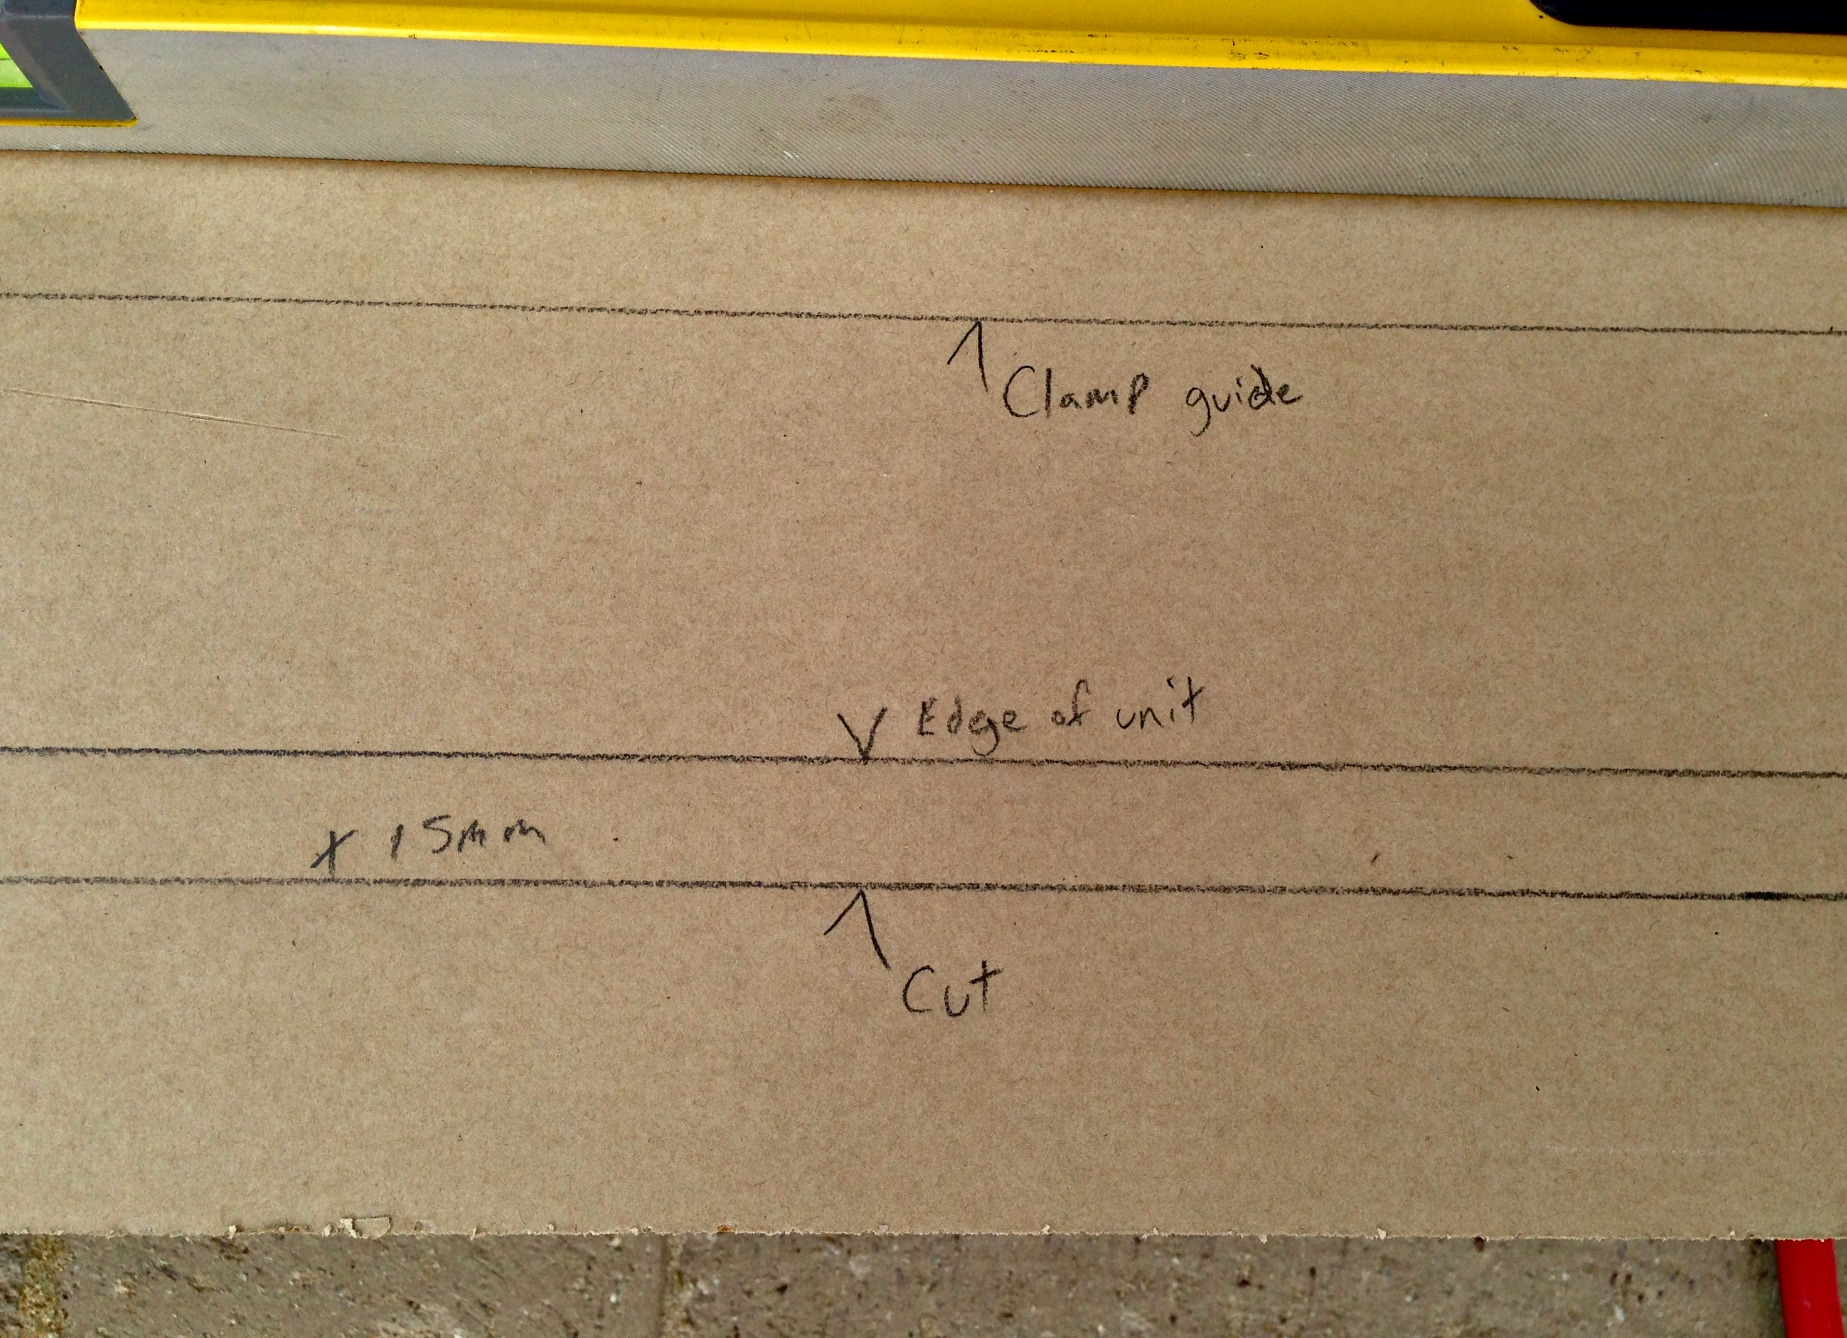 Put masking tape on your worktop to make marking it easier